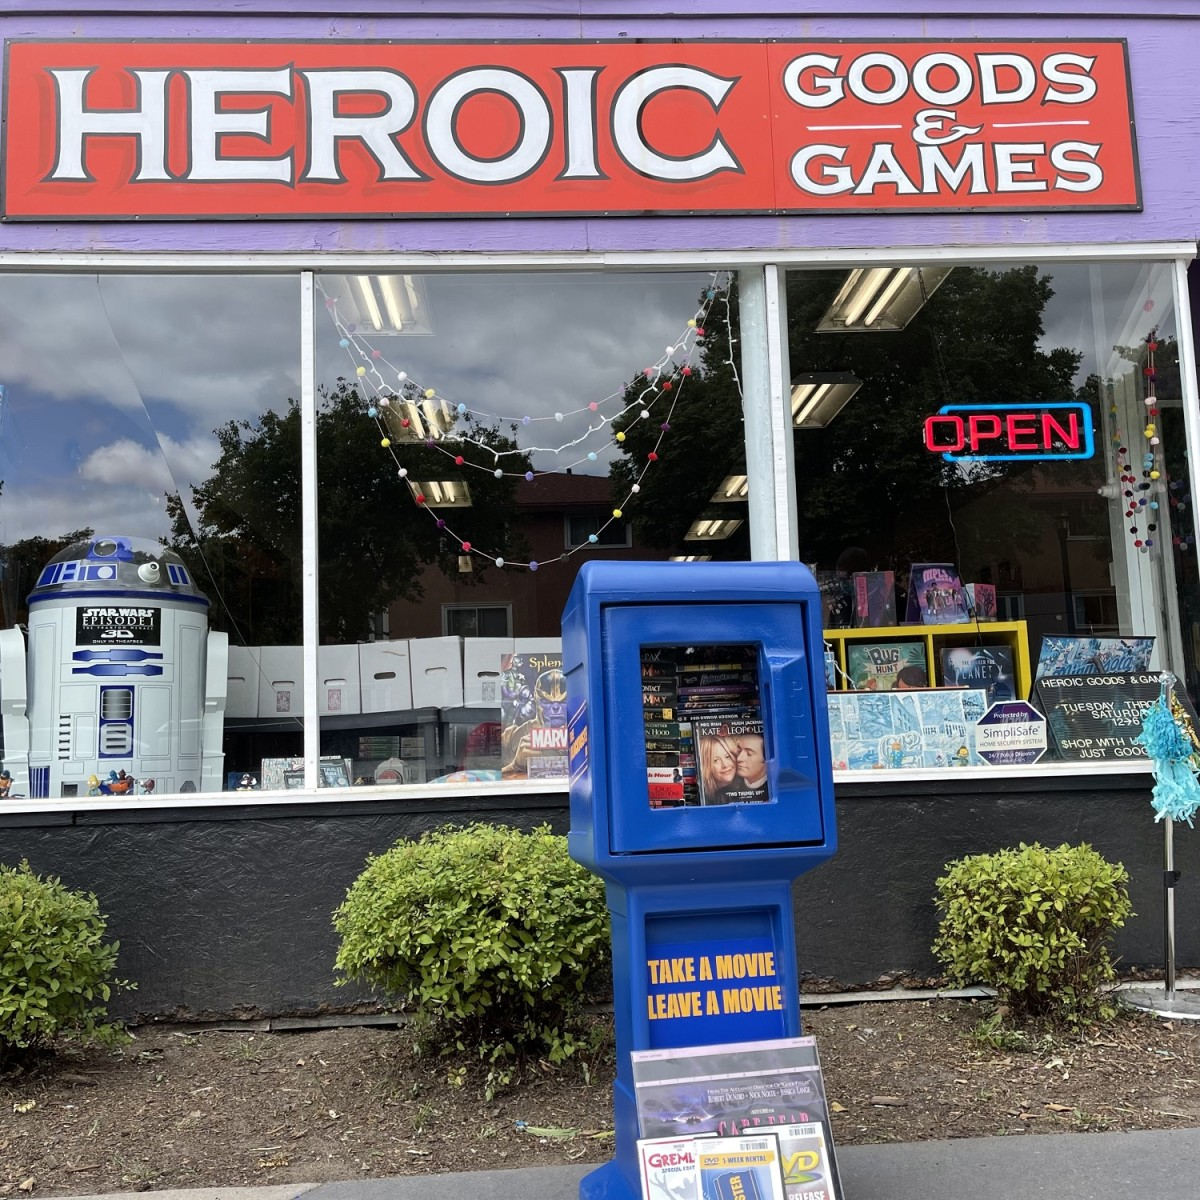 Heroic Goods and Games - Free Blockbuster 1